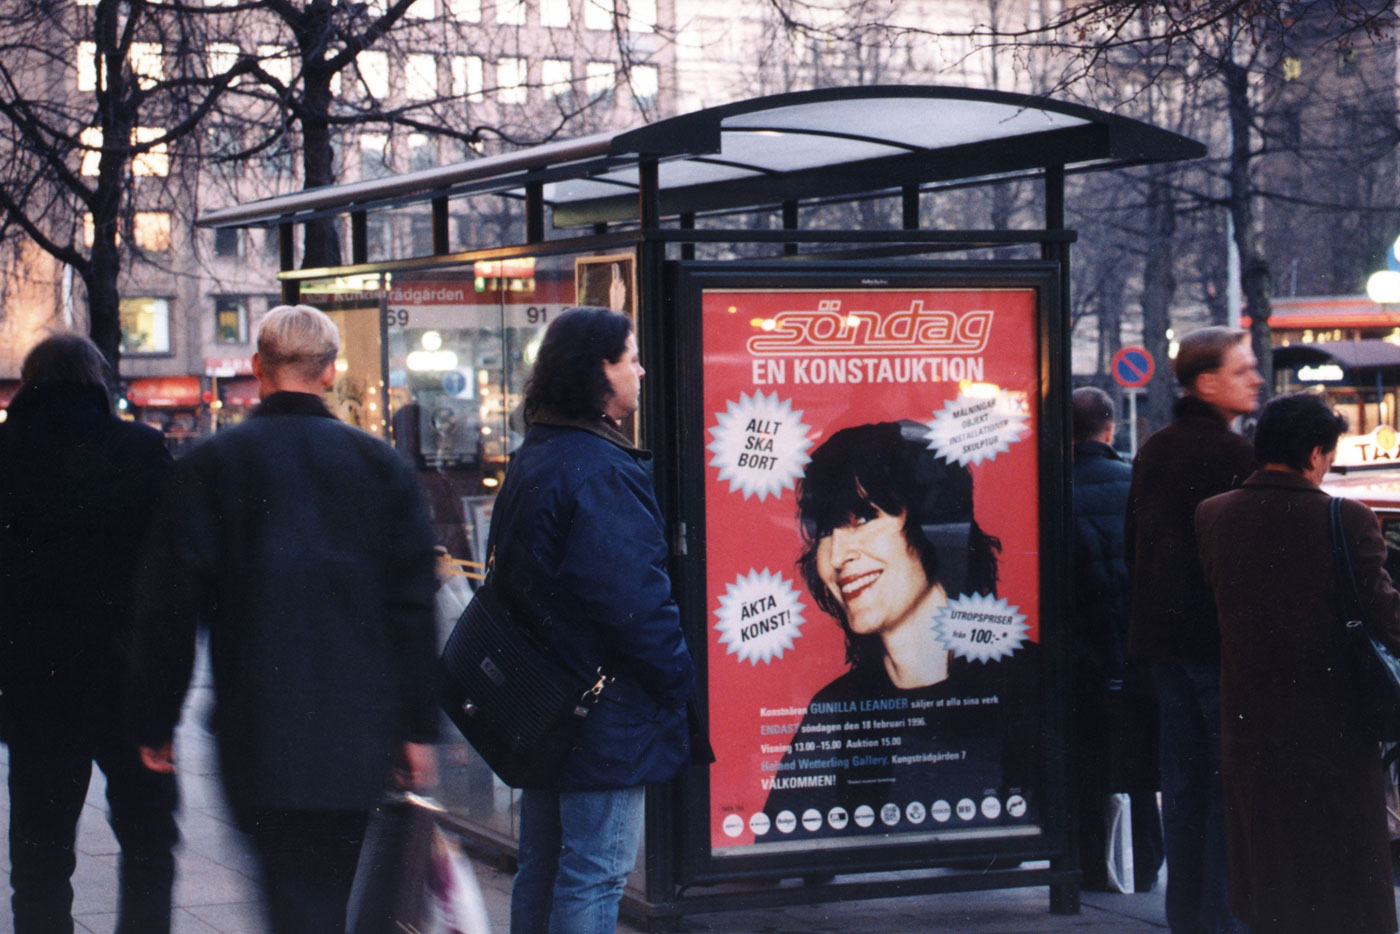 Large selling posters with my face were placed around Stockholm. Photo: Hans Skoglund